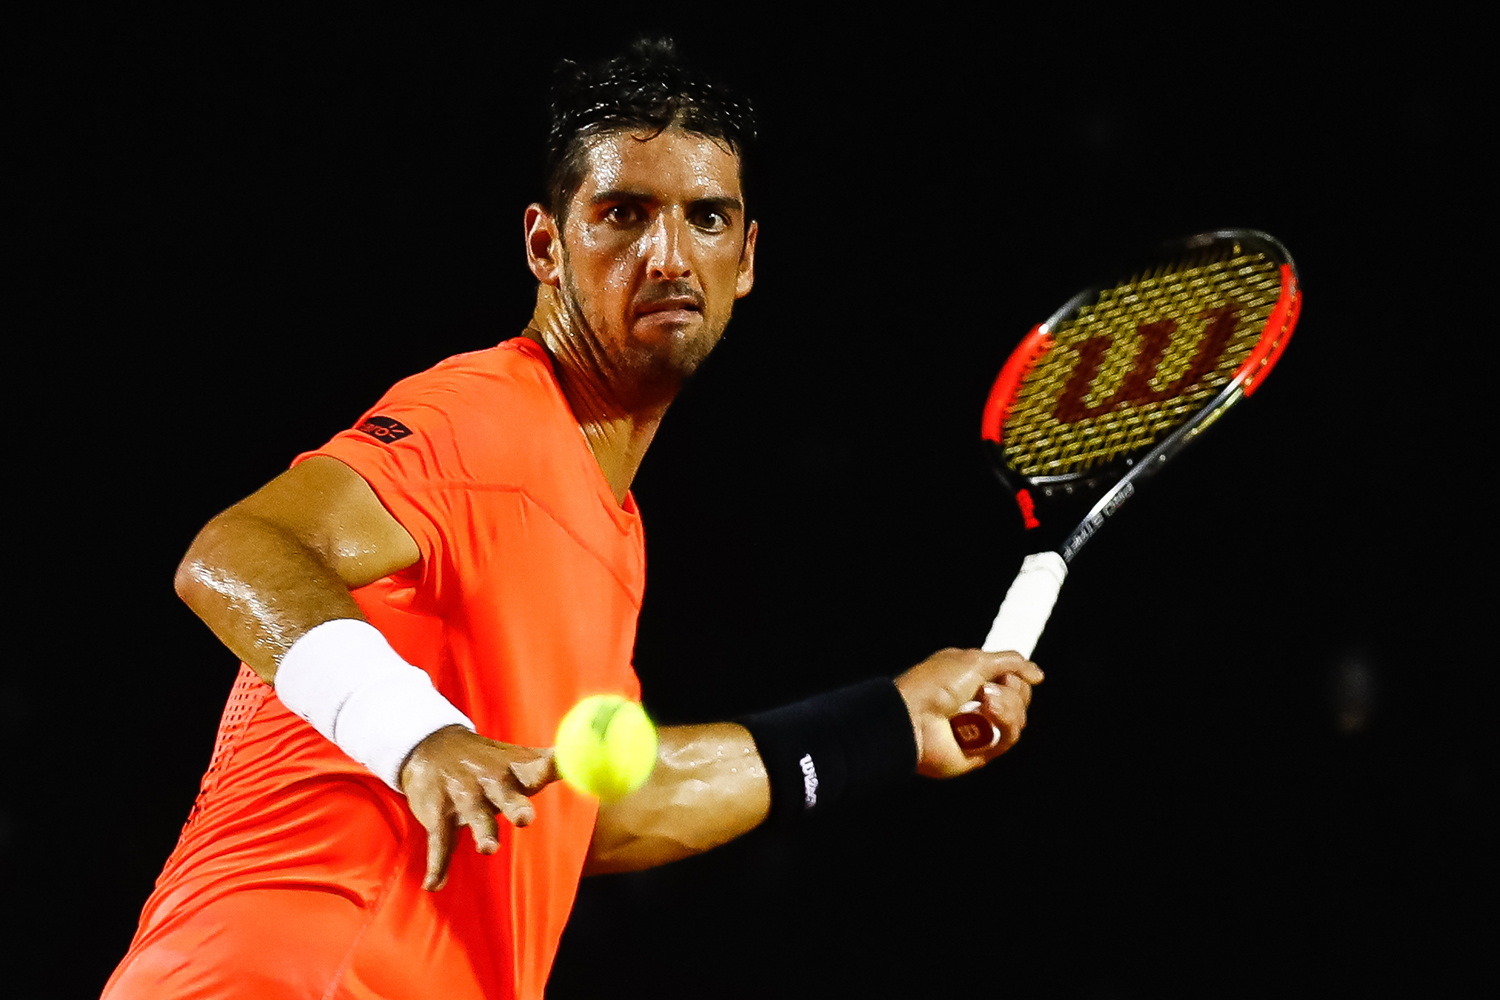 RIO DE JANEIRO, BRAZIL - FEBRUARY 23: Thomaz Bellucci of Brazil returns a shot to Thiago Monteiro of Brazil during the ATP Rio Open 2017 at Jockey Club Brasileiro on February 23, 2017 in Rio de Janeiro, Brazil. (Photo by Buda Mendes/Getty Images)